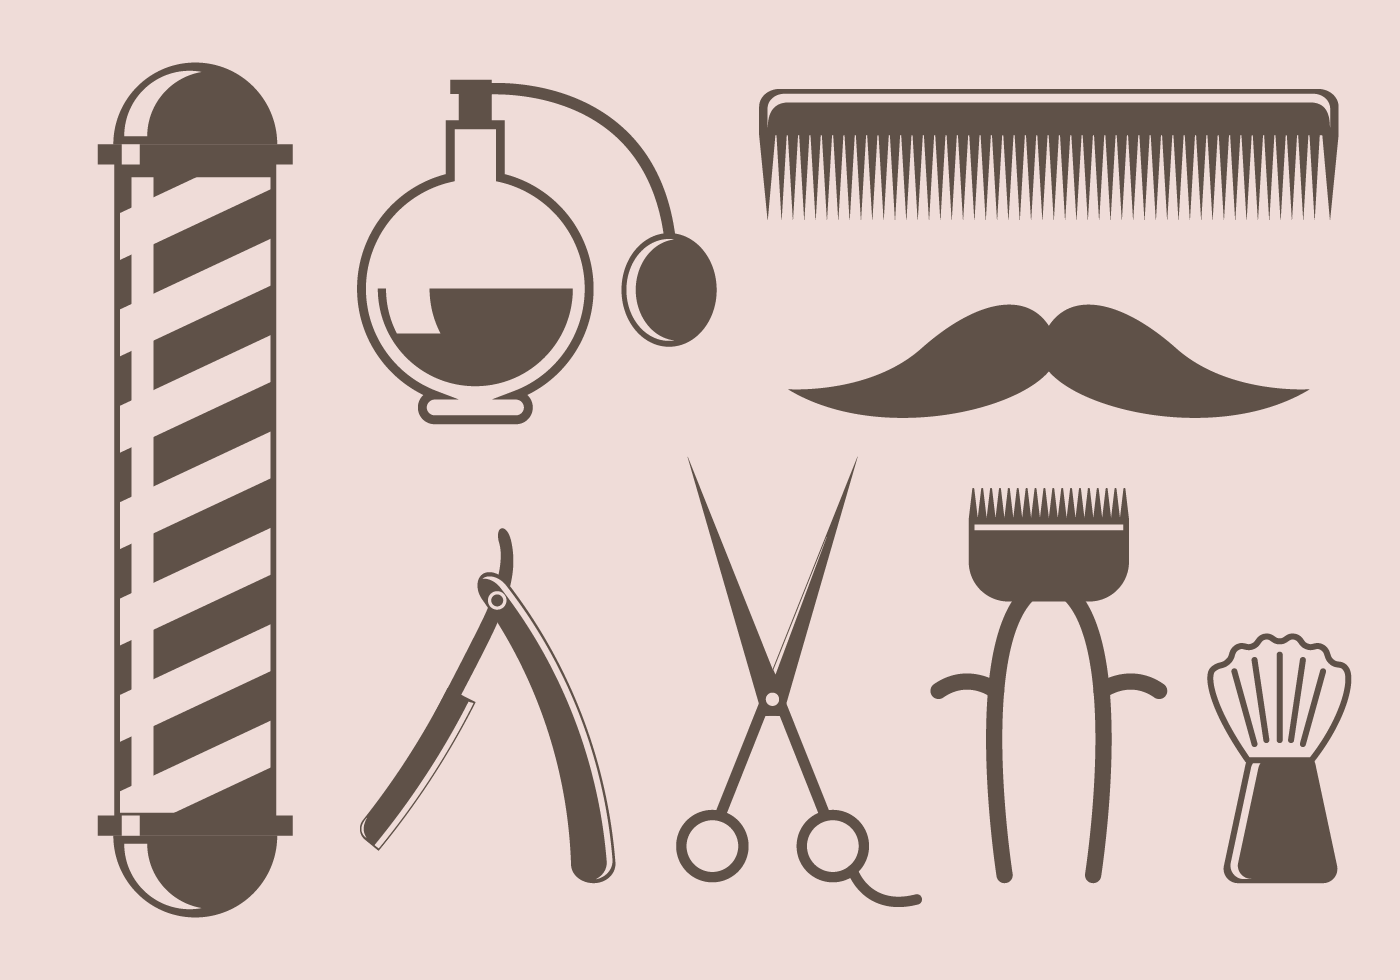 Barber Vector : Free Vintage Barber Tool Vector - Download Free Vector Art, Stock ...